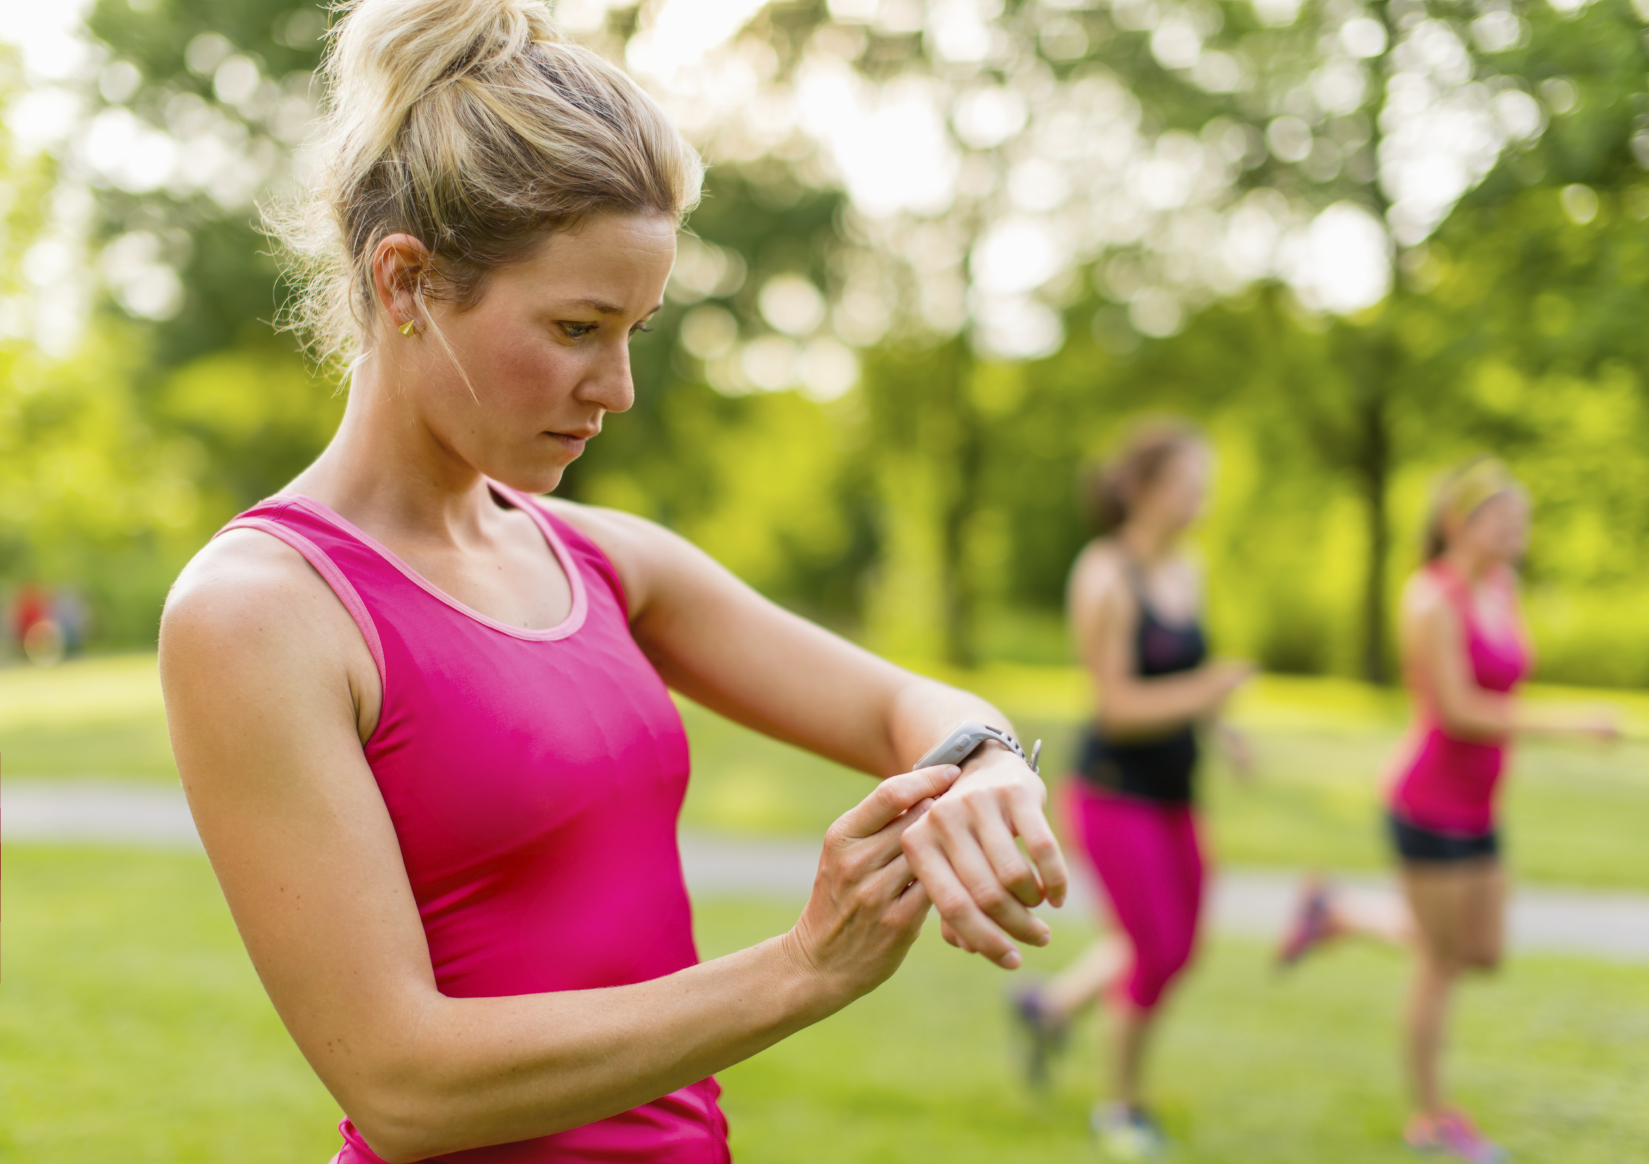 Portrait of an athlete using her watch to mesure her pulse while running with friends